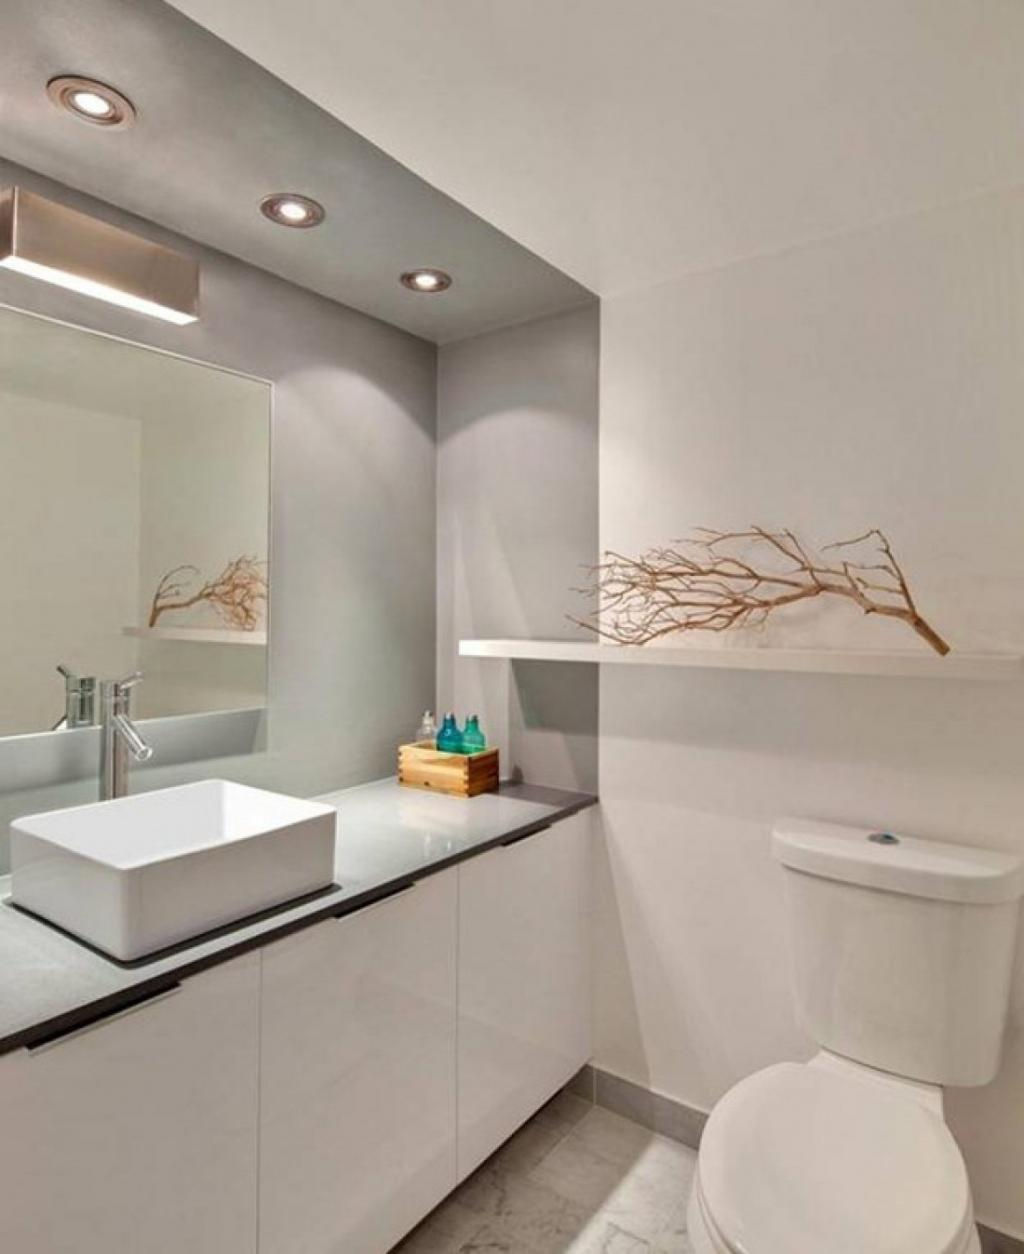 Bathroom Design Ideas For Apartments modern bathroom design ideas ideas bathroom designs for apartment